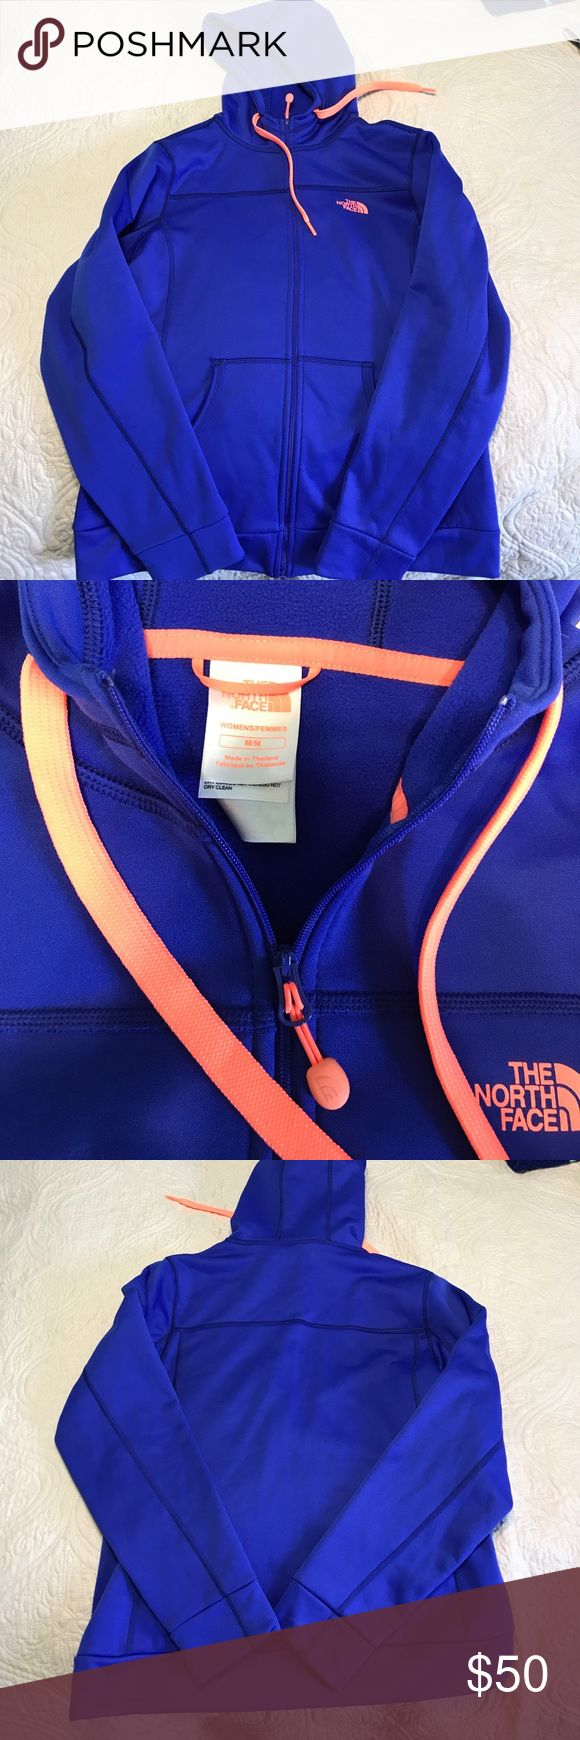 The North Face jacket Fleece inside, worn once, in really great condition! The North Face Jackets & Coats